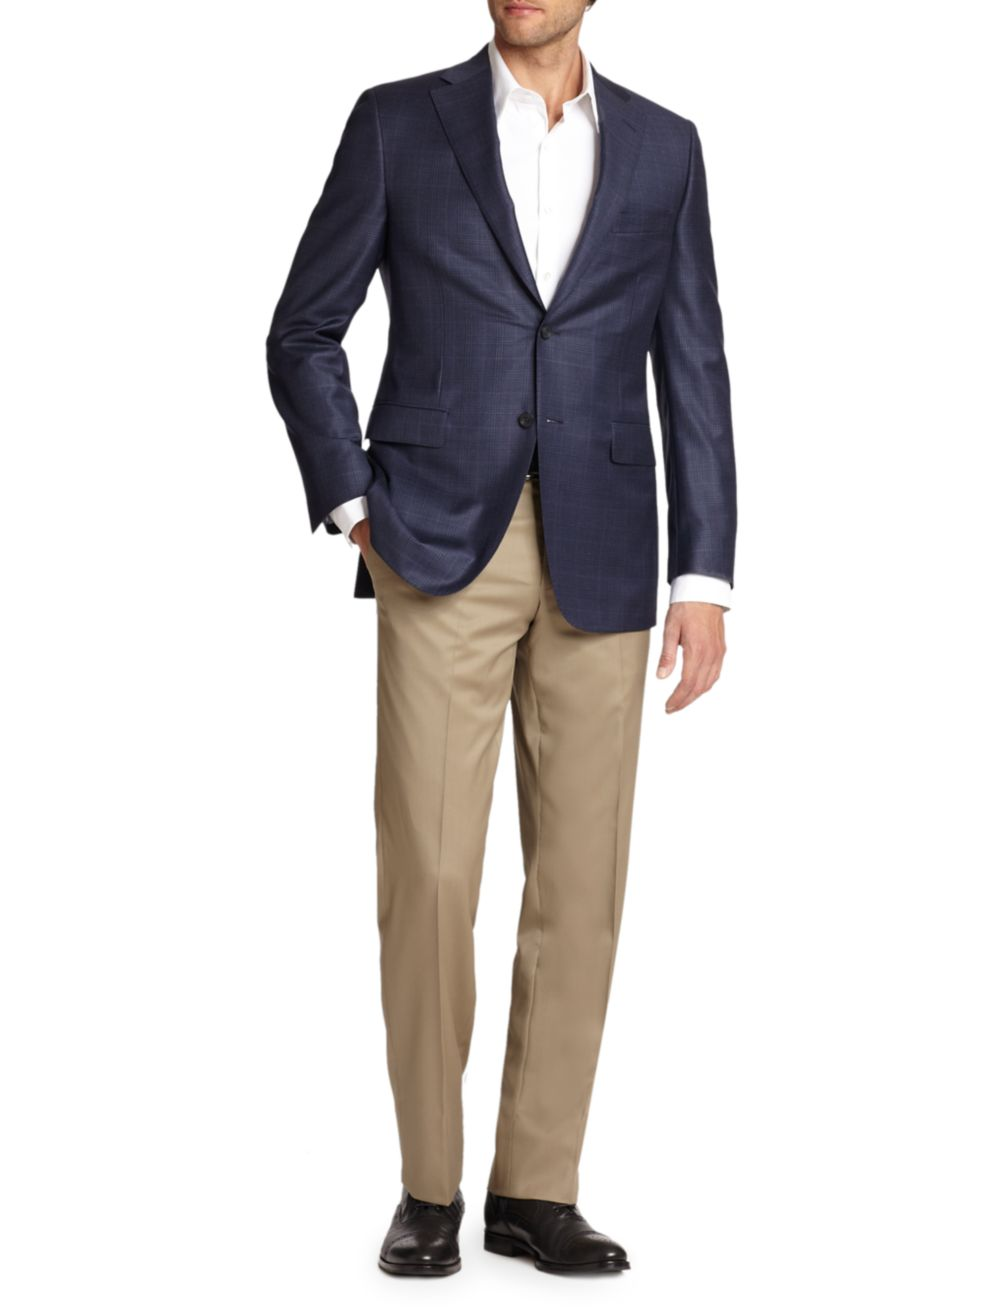 KOLT • Tan • Modern Fit Trouser • Loro Piana